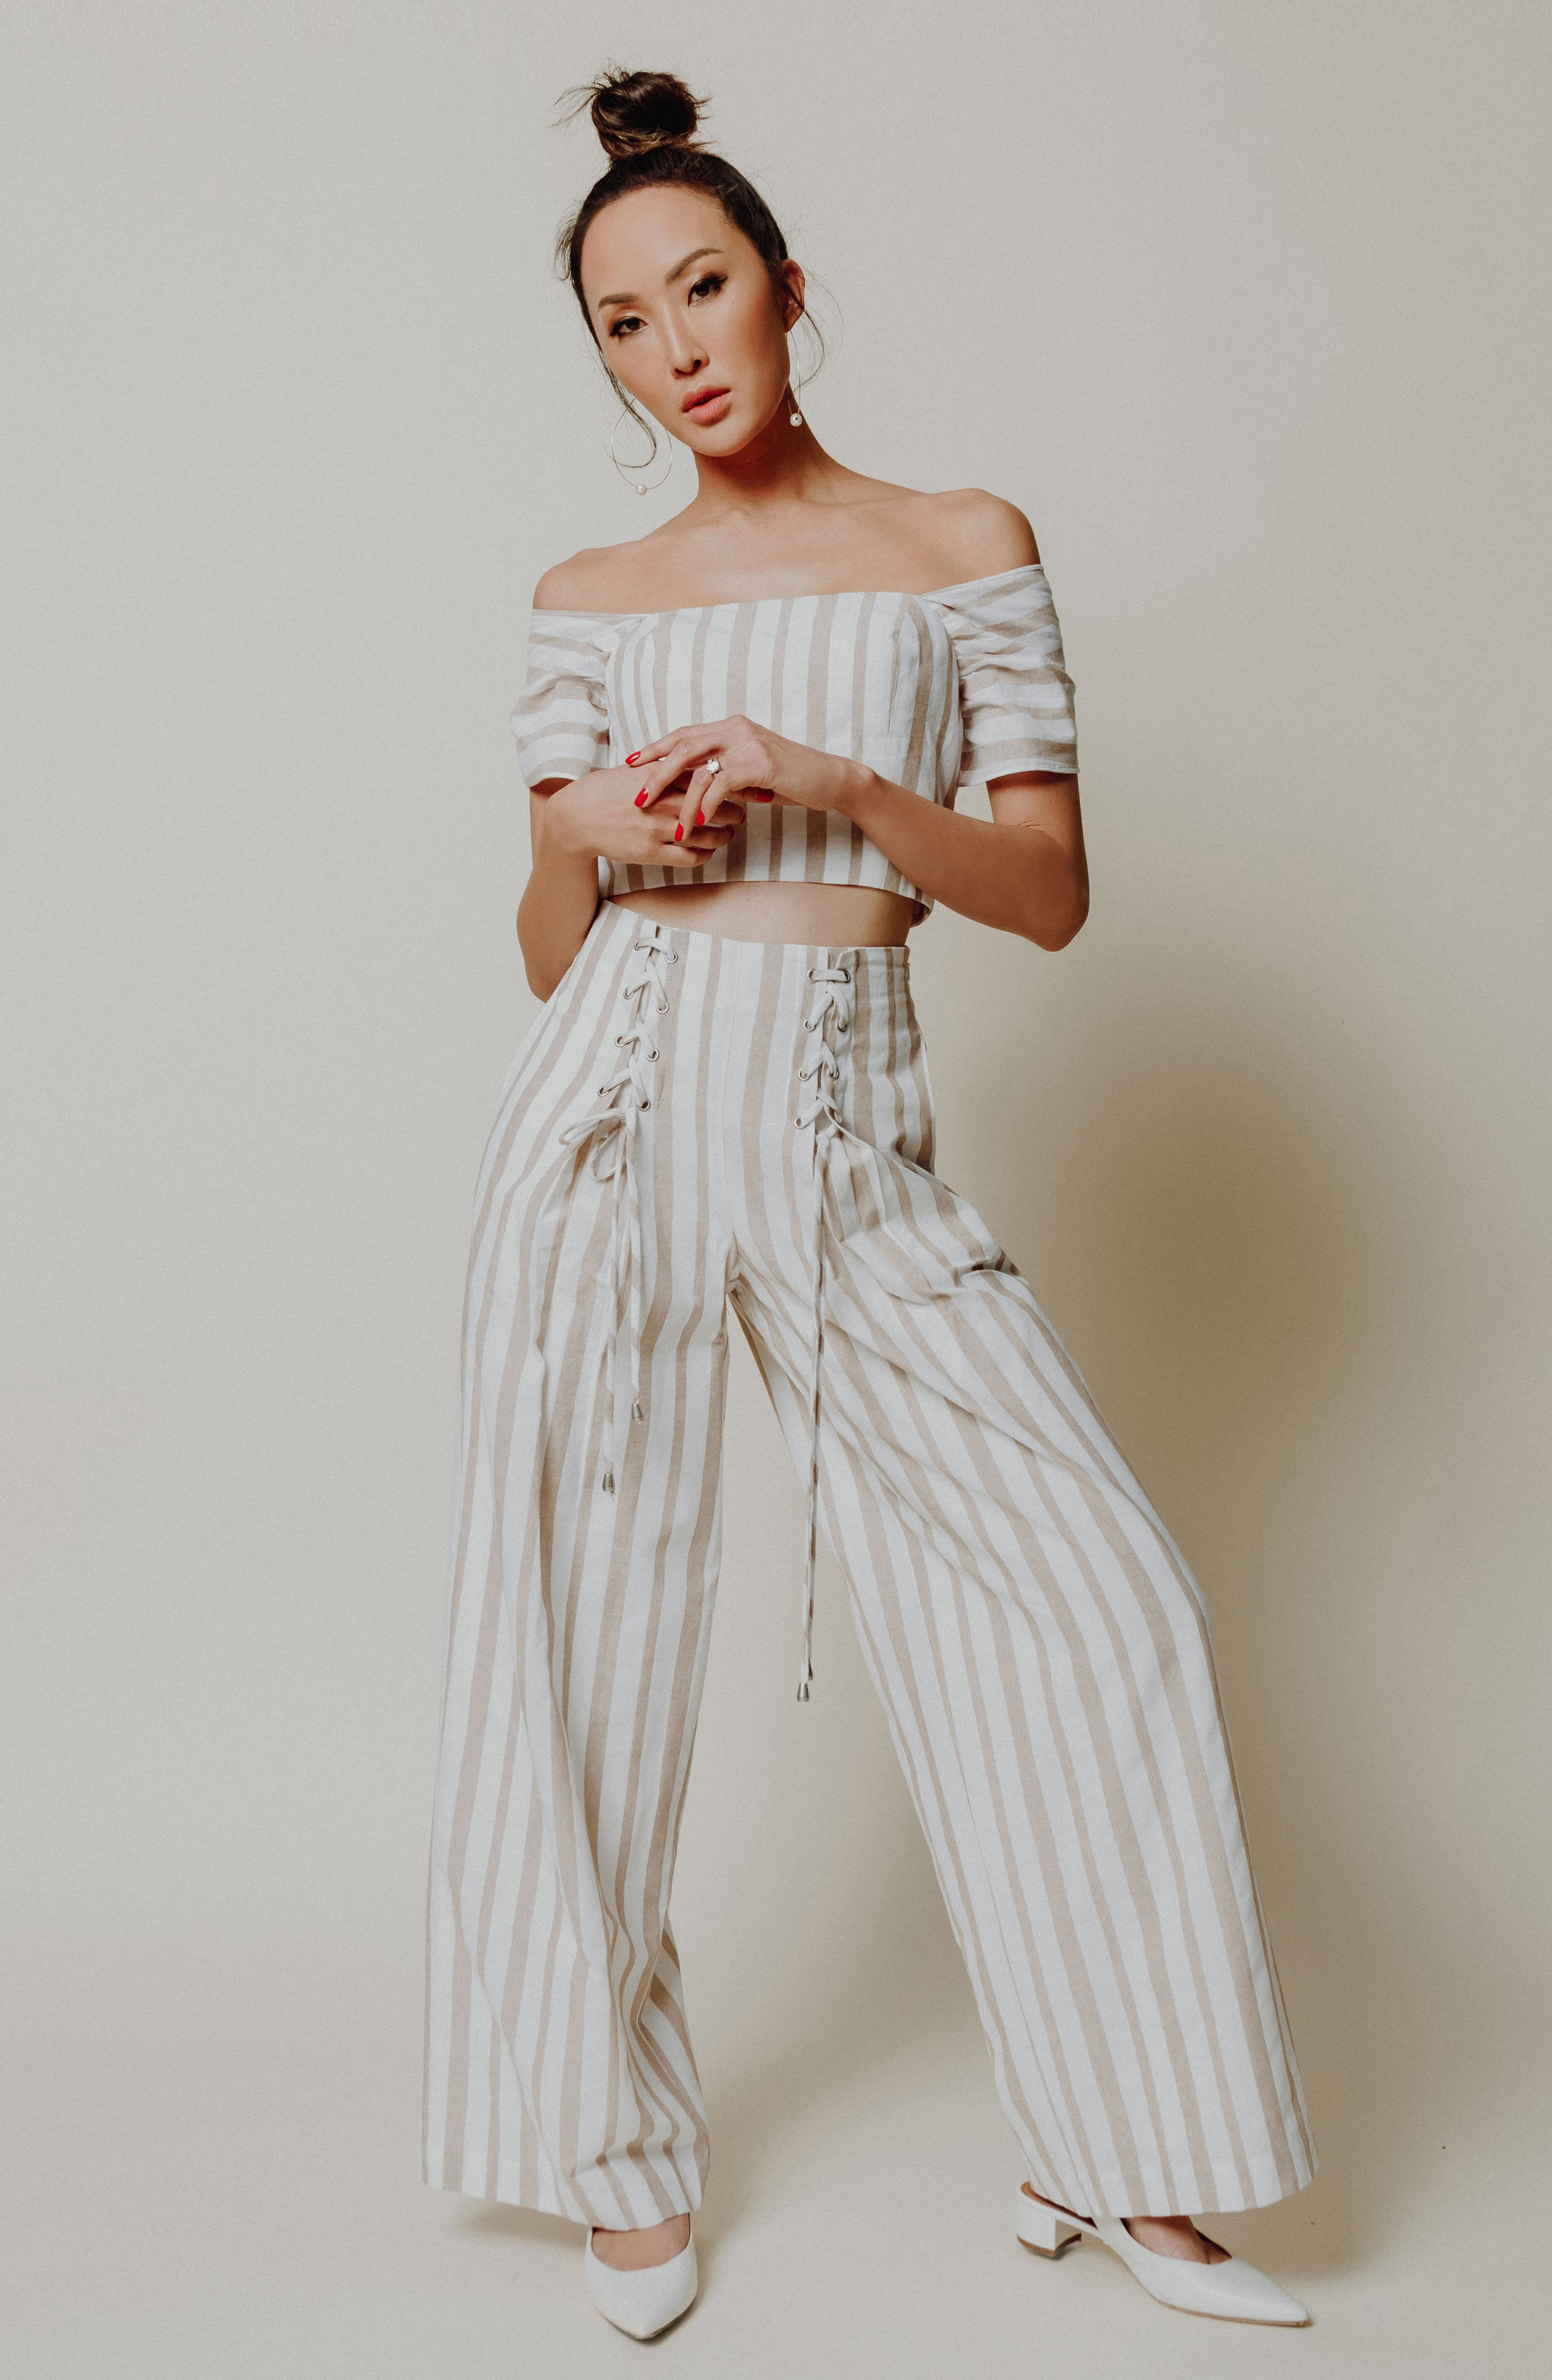 Chriselle x J.O.A. Lace-Up High Waist Wide Leg Pants,                             Alternate thumbnail 12, color,                             Sand Stripe